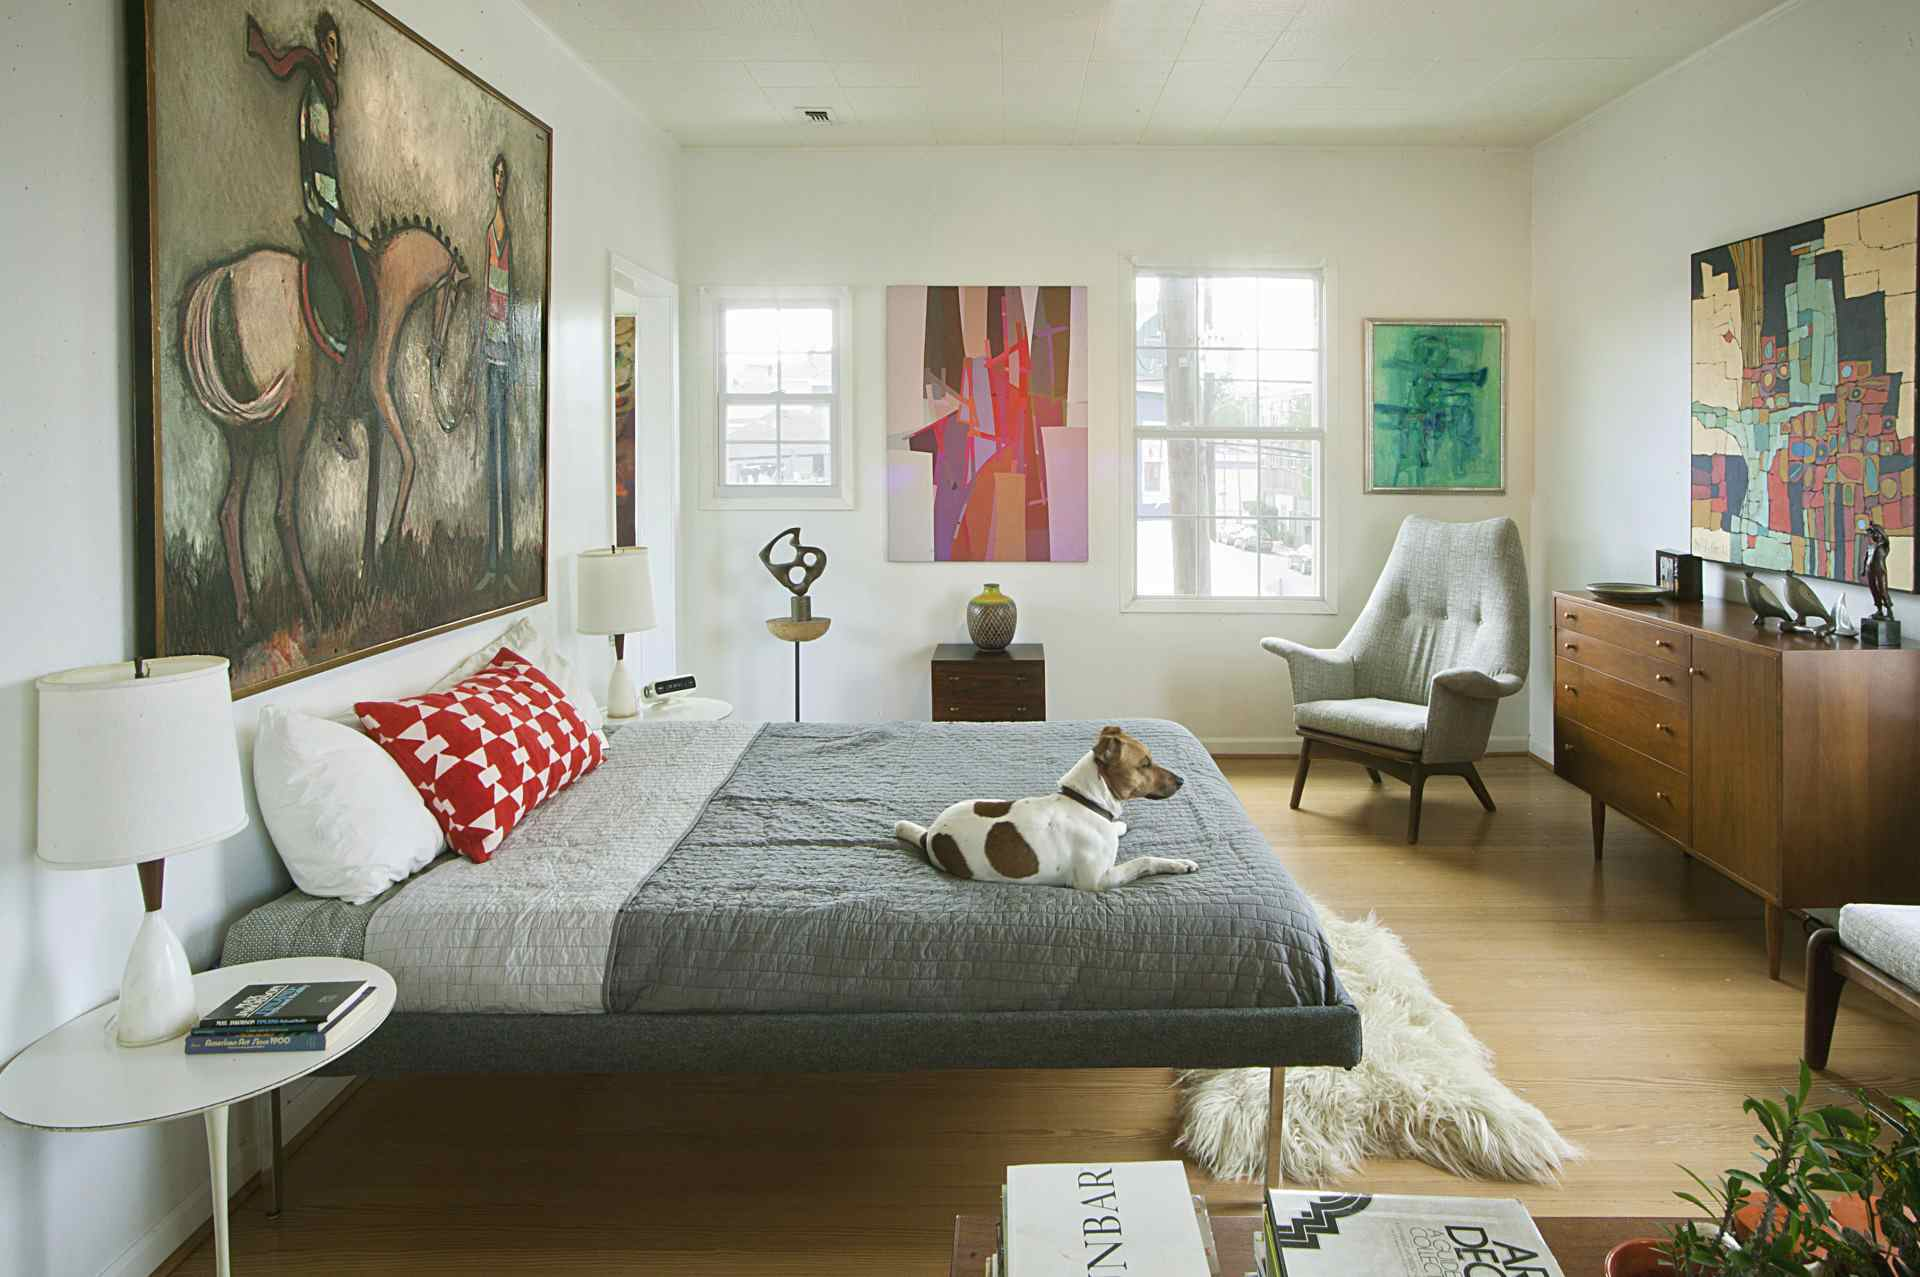 Midcentury modern bedroom with colorful artwork.